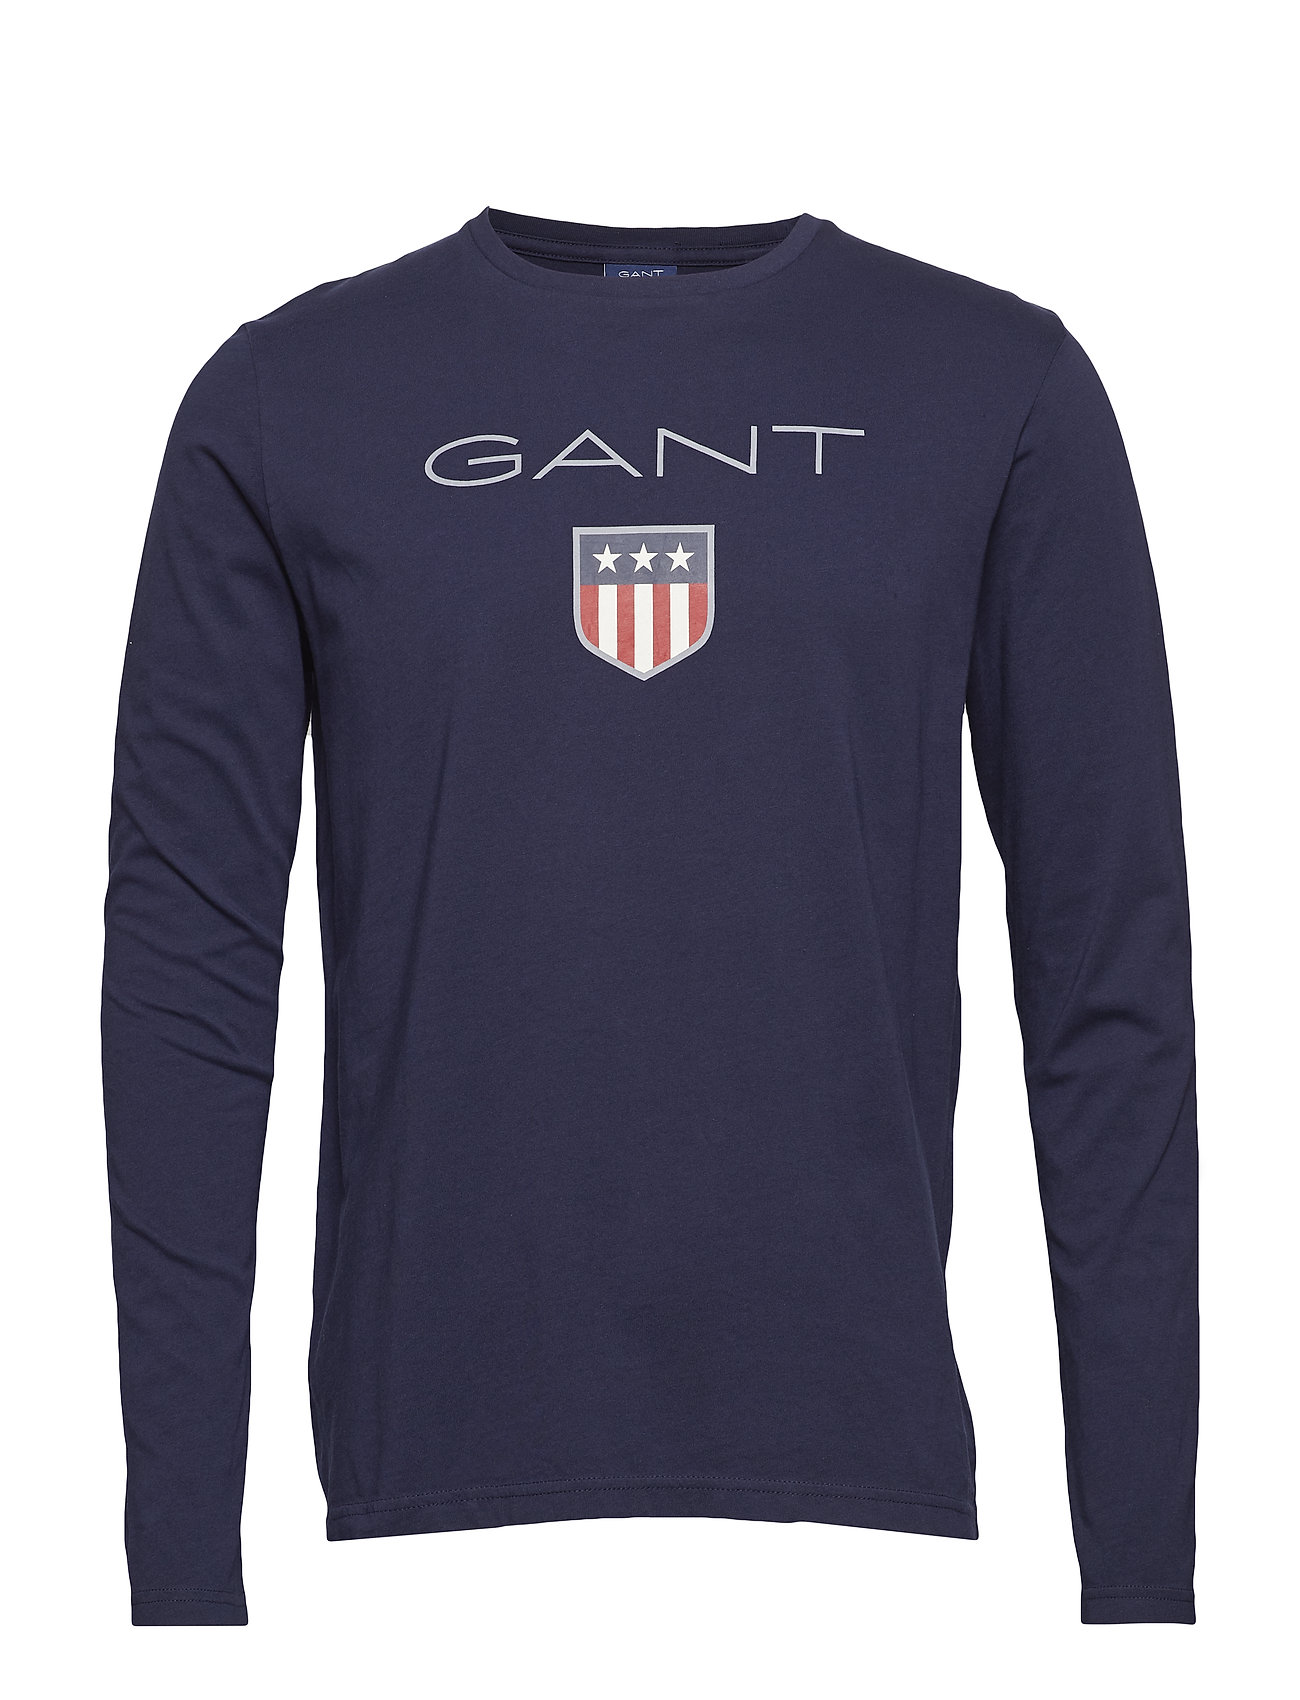 GANT SHIELD LS T-SHIRT - EVENING BLUE